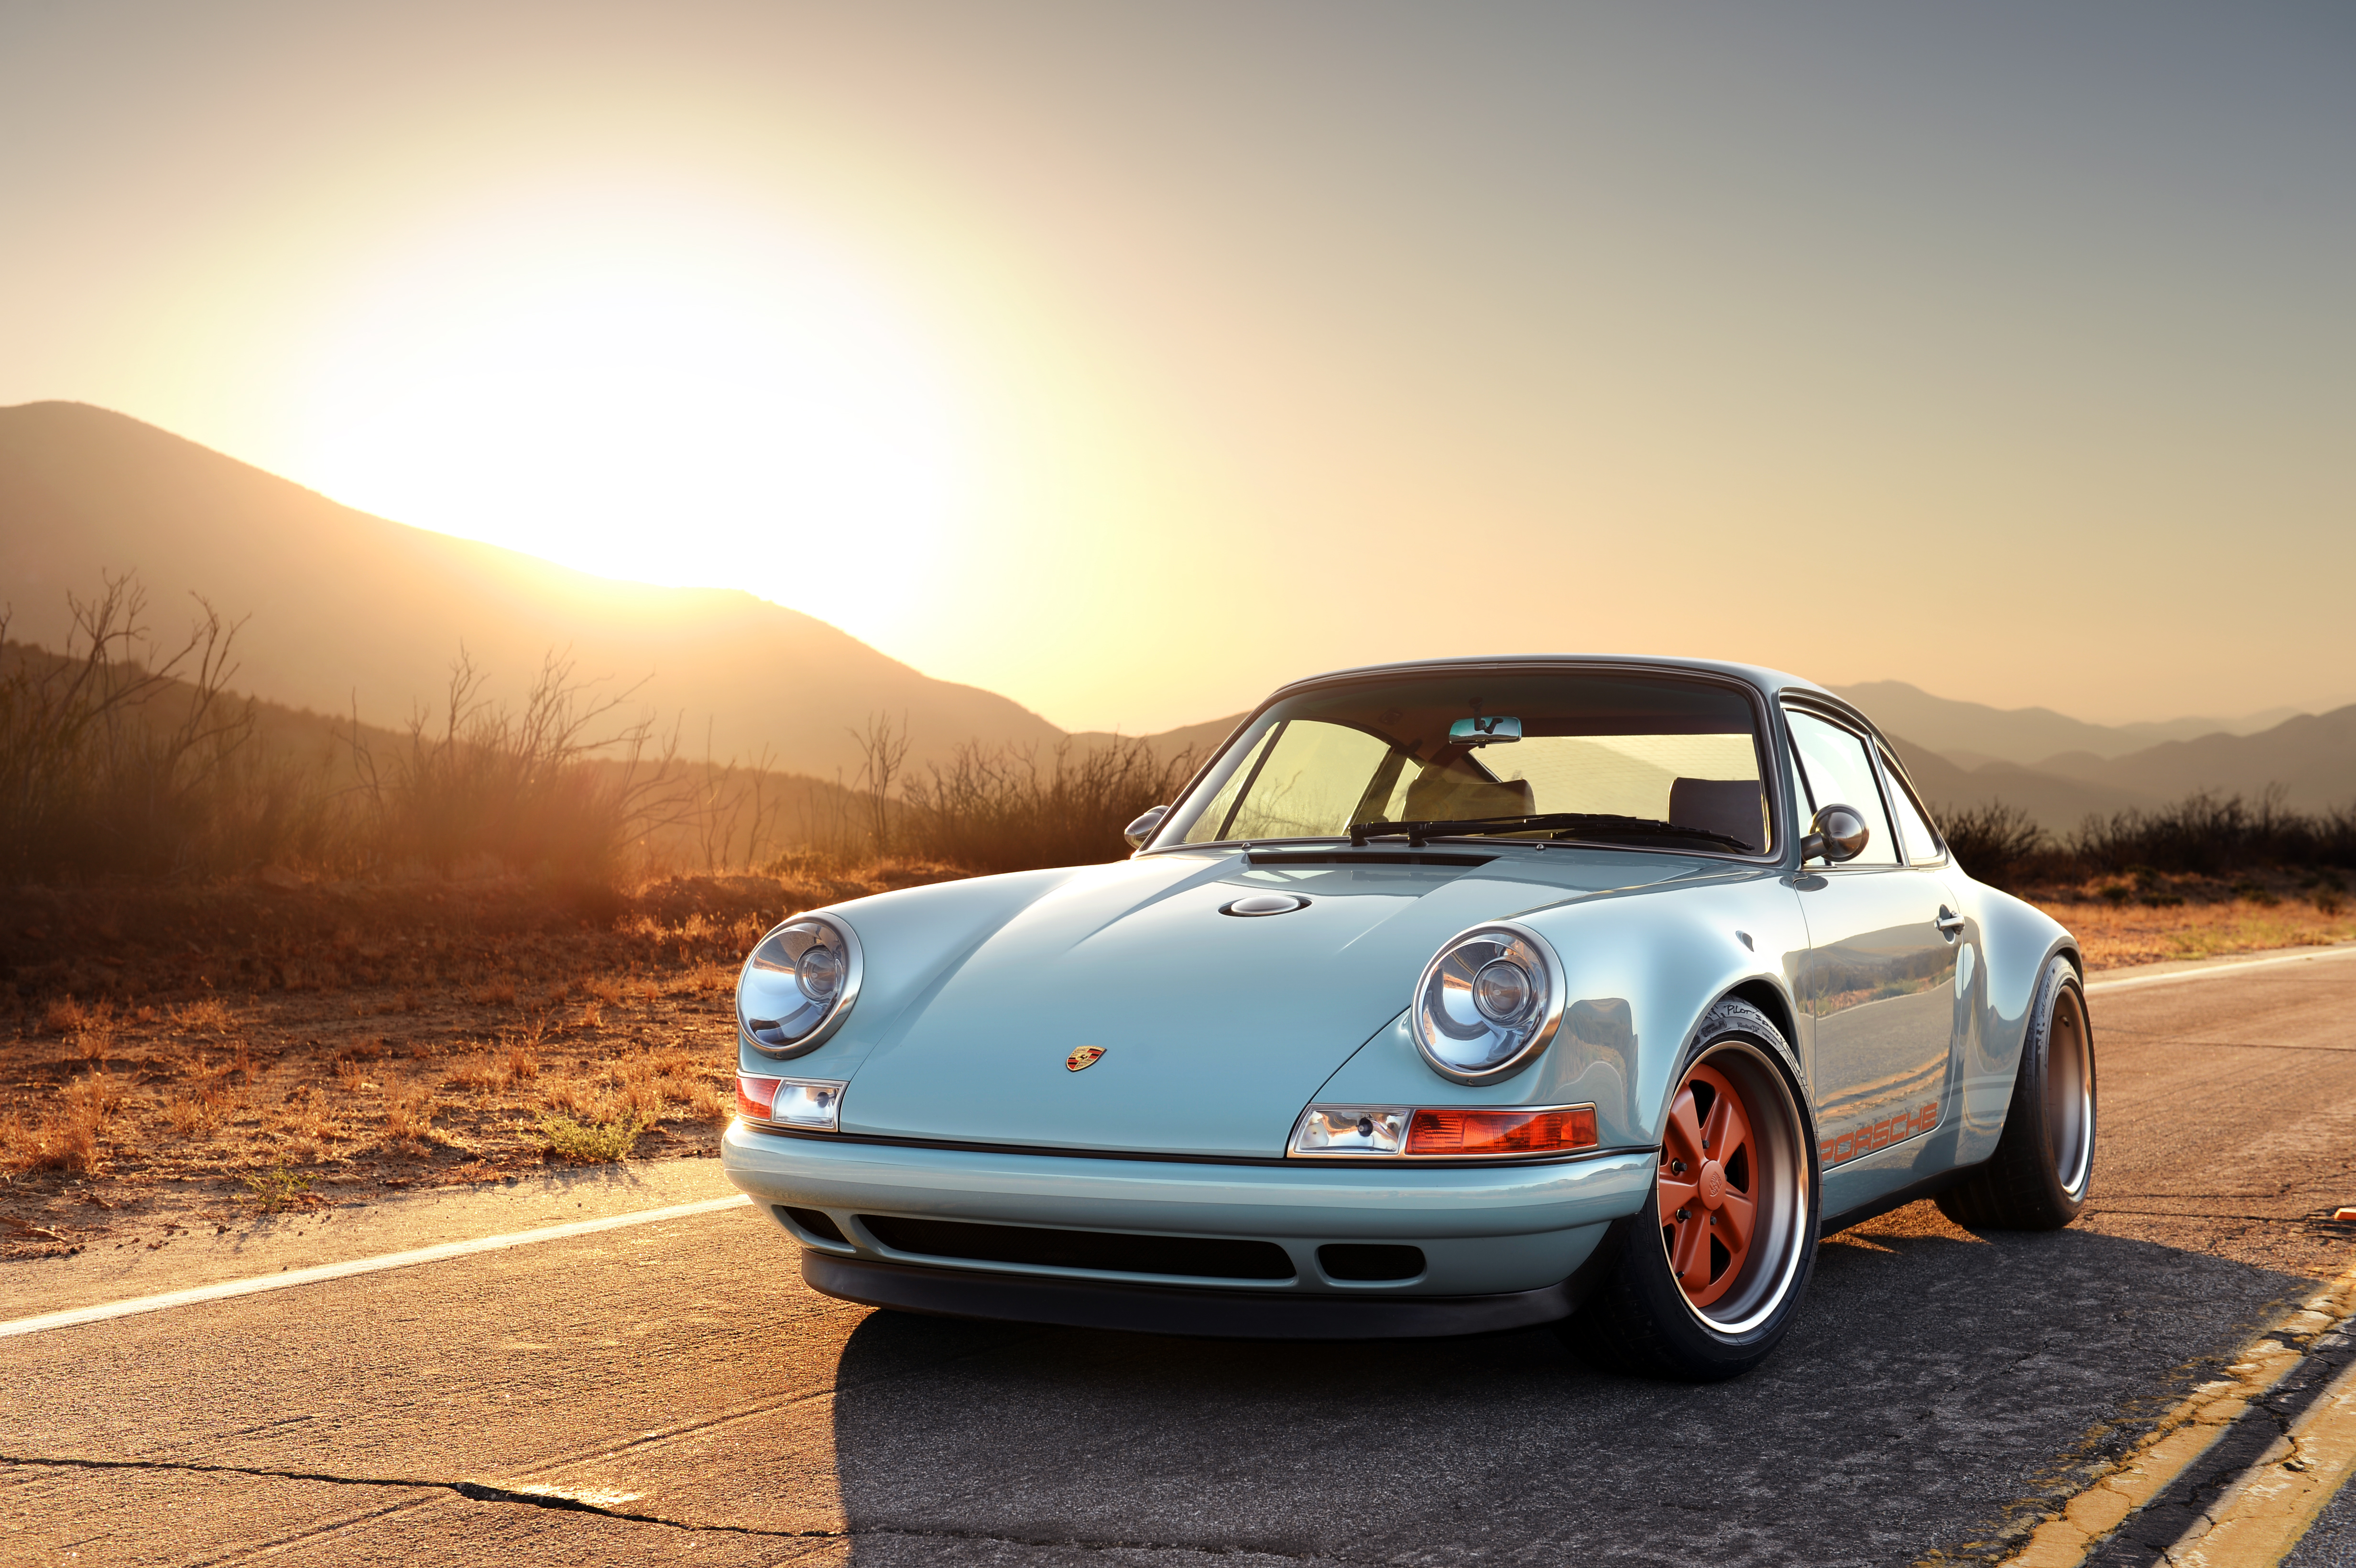 Porsche 911 personalizado por Singer Vehicle Design